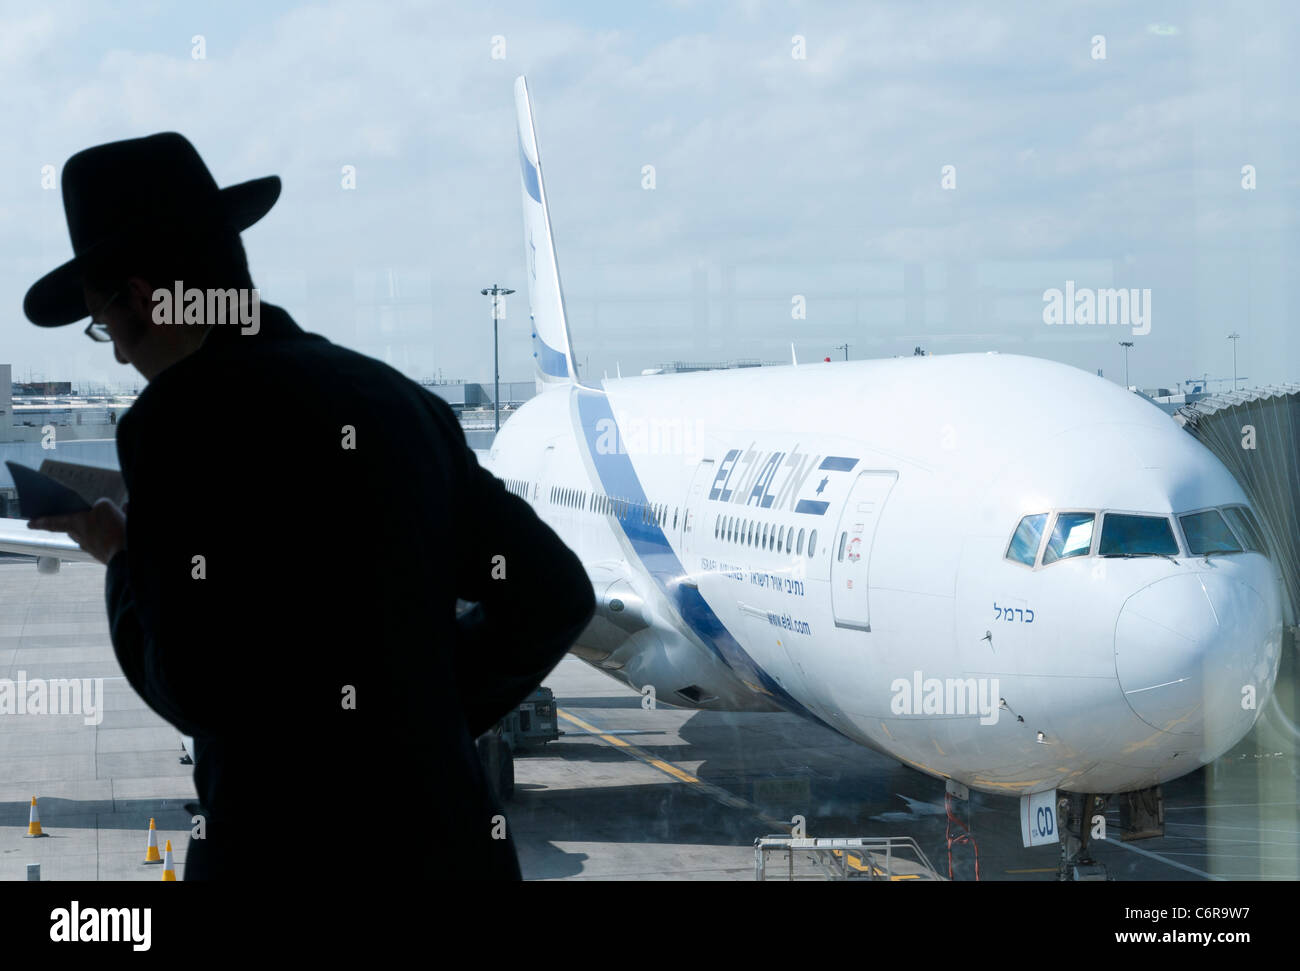 Orthodox Jew praying with El Al plane in Bkgd. Heathrow airport. London - Stock Image